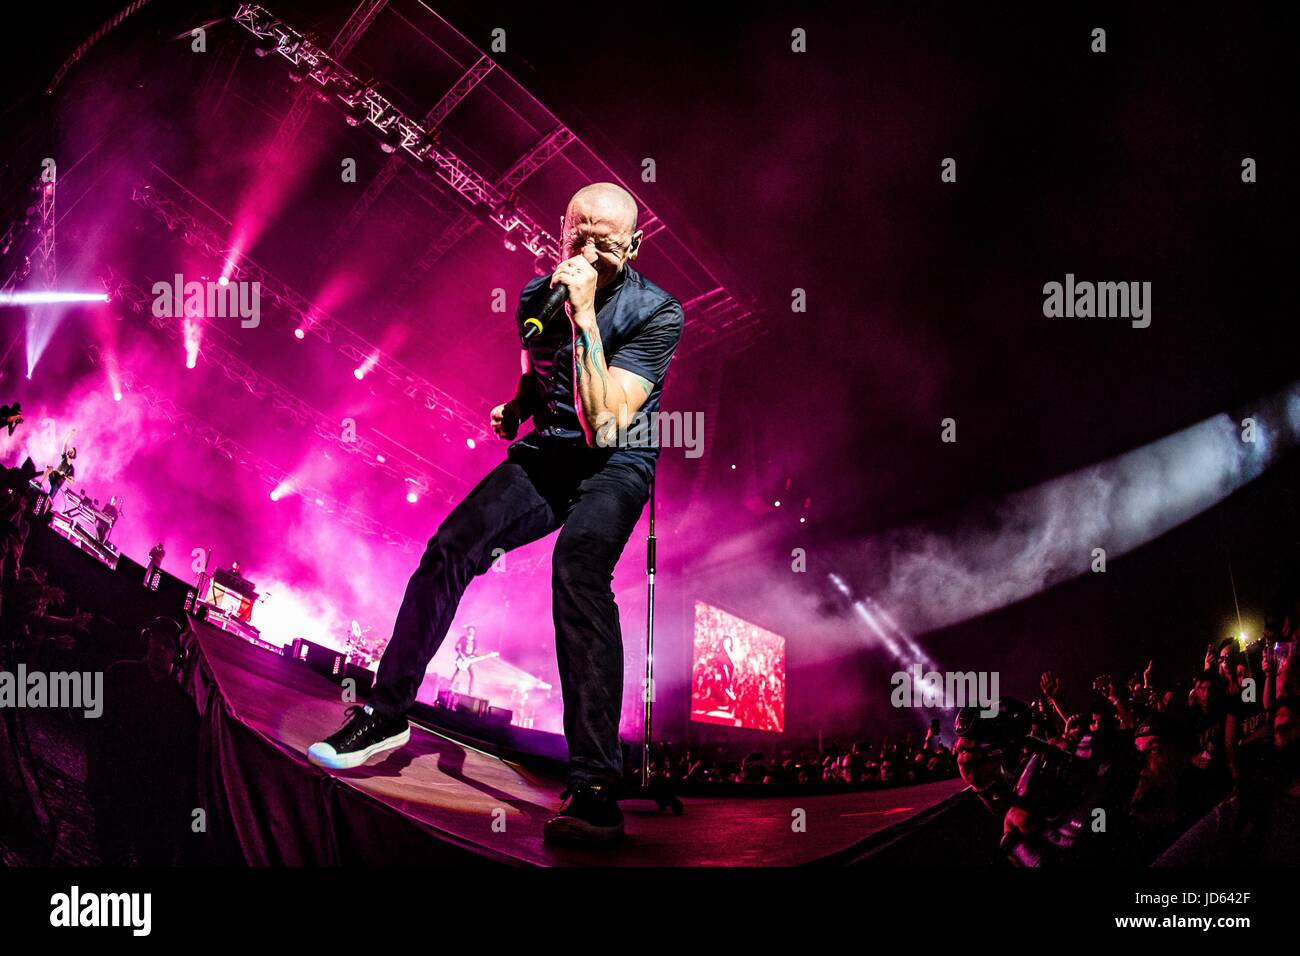 Monza, Italy  17th June, 2017  Linkin Park performs live at